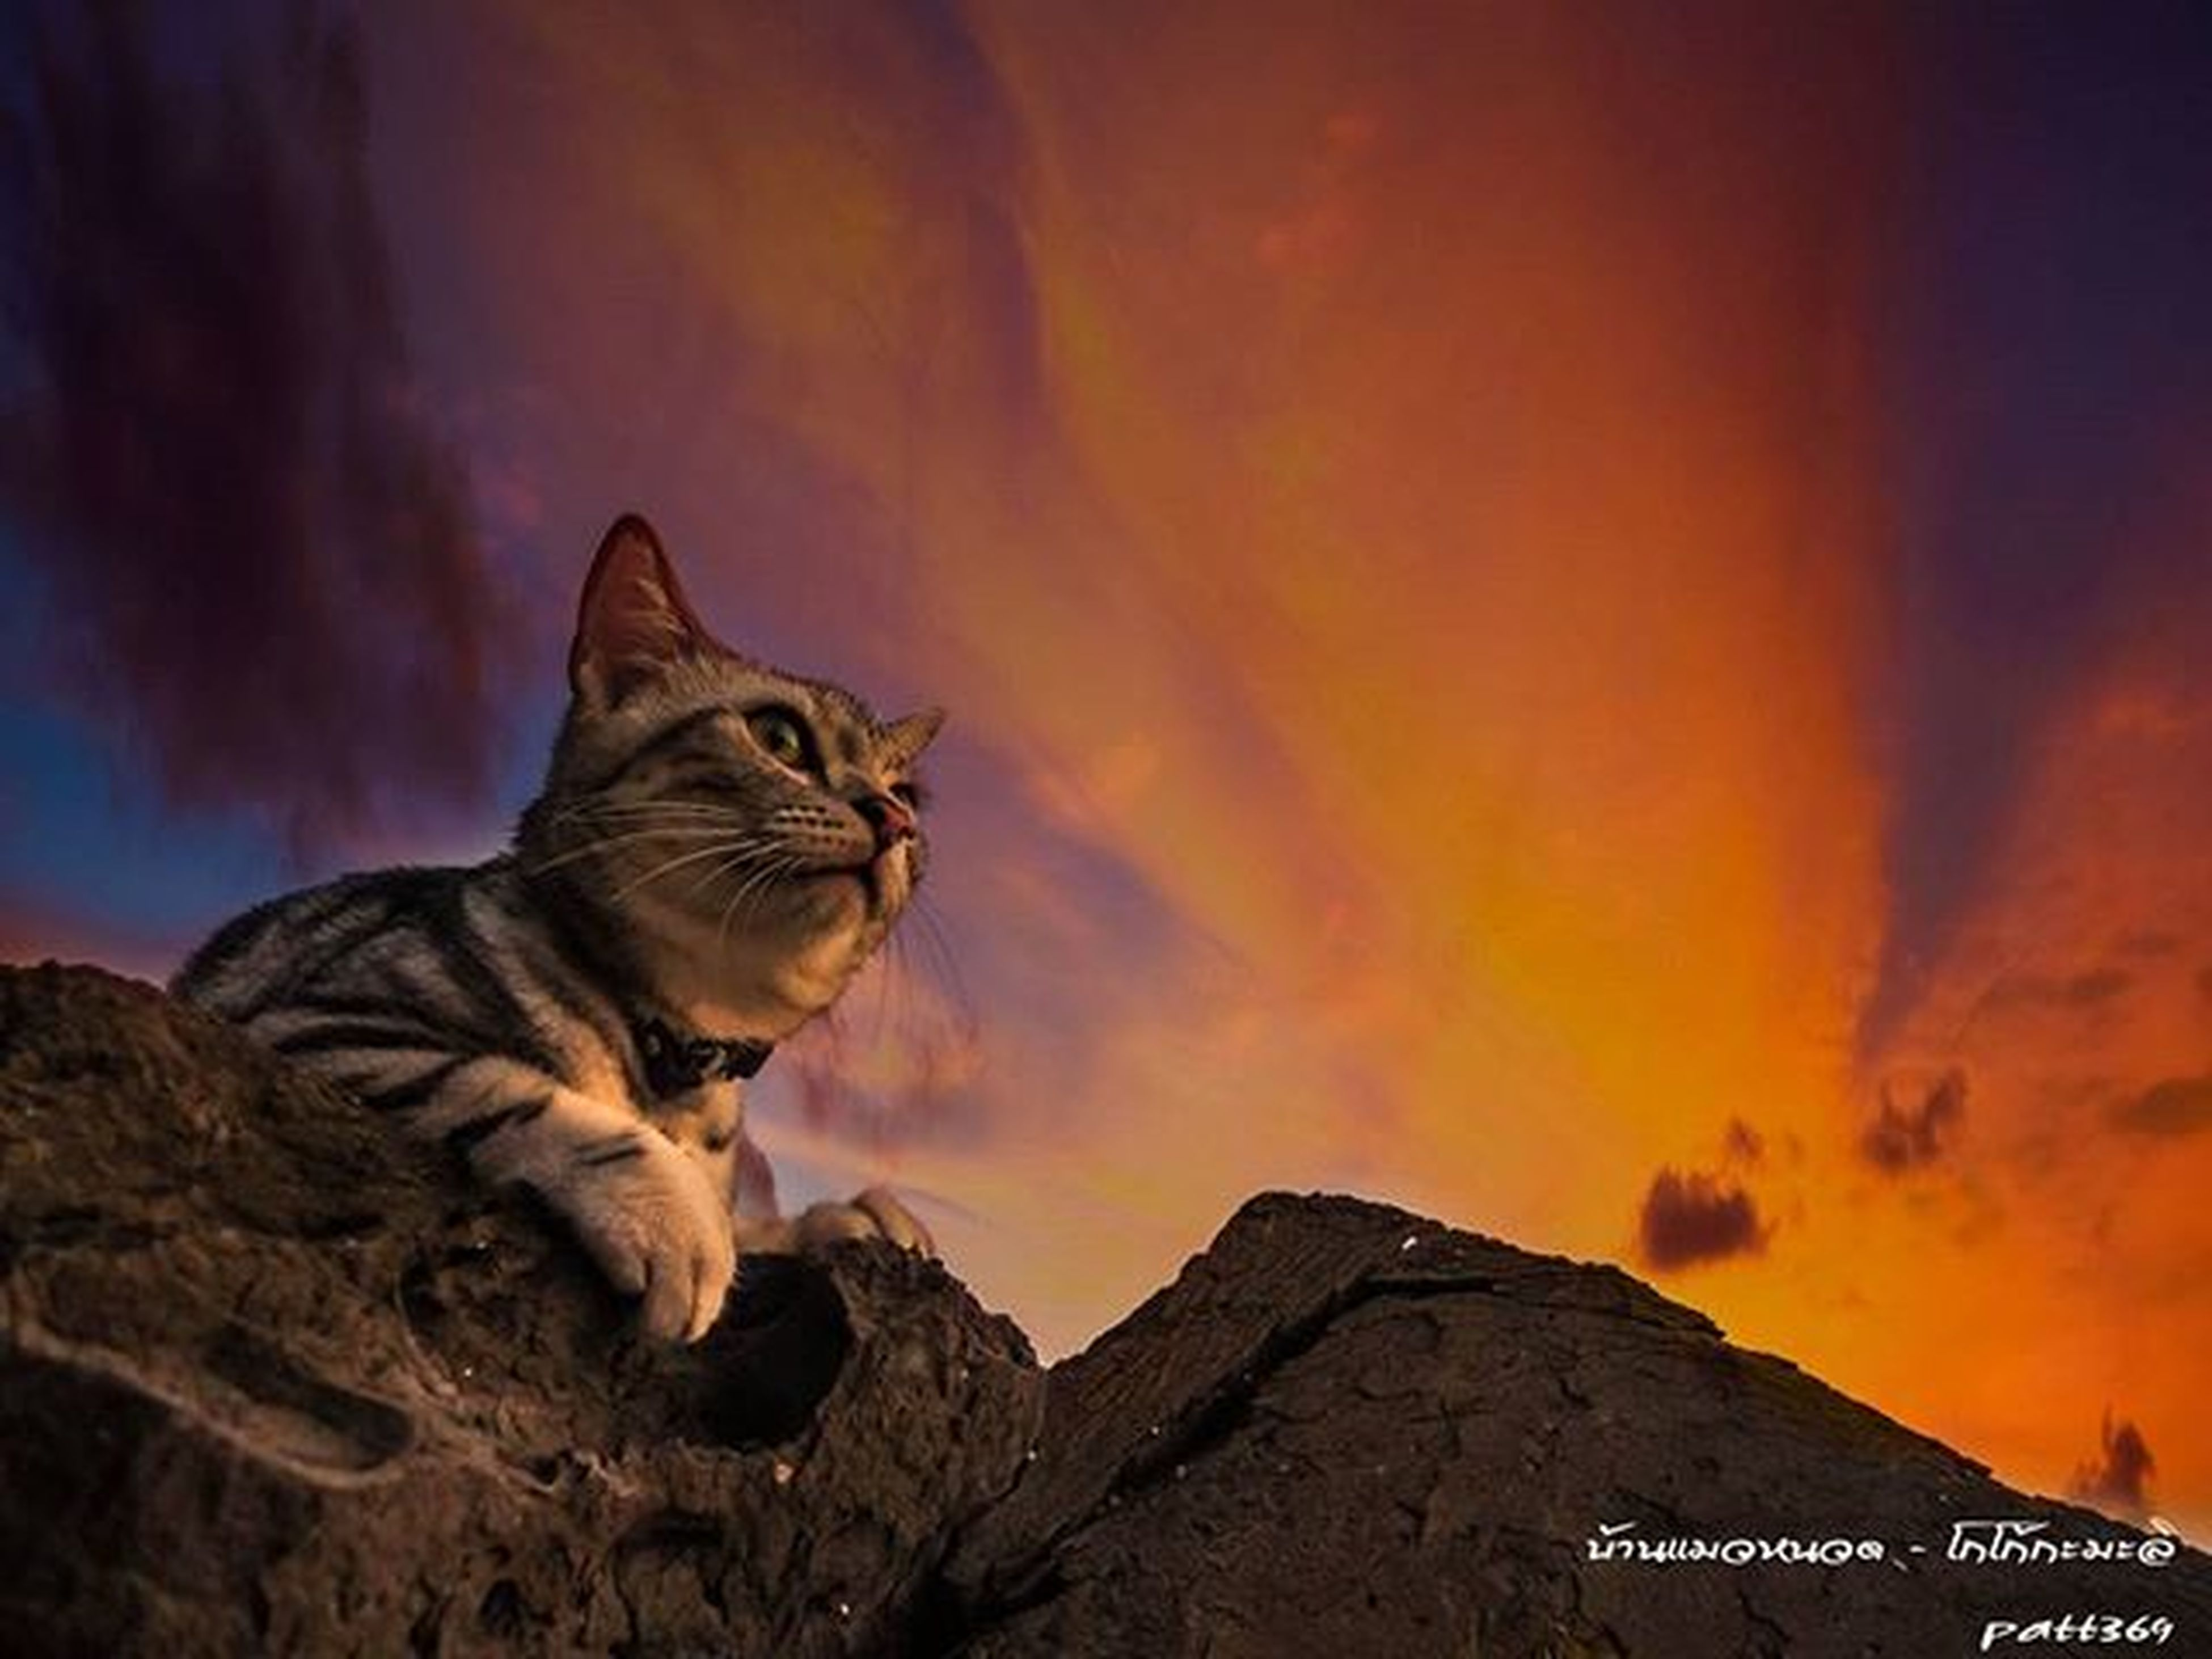 one animal, sky, animal themes, sunset, cloud - sky, orange color, low angle view, mammal, mountain, nature, cloudy, beauty in nature, rock - object, cloud, domestic animals, silhouette, pets, weather, outdoors, scenics